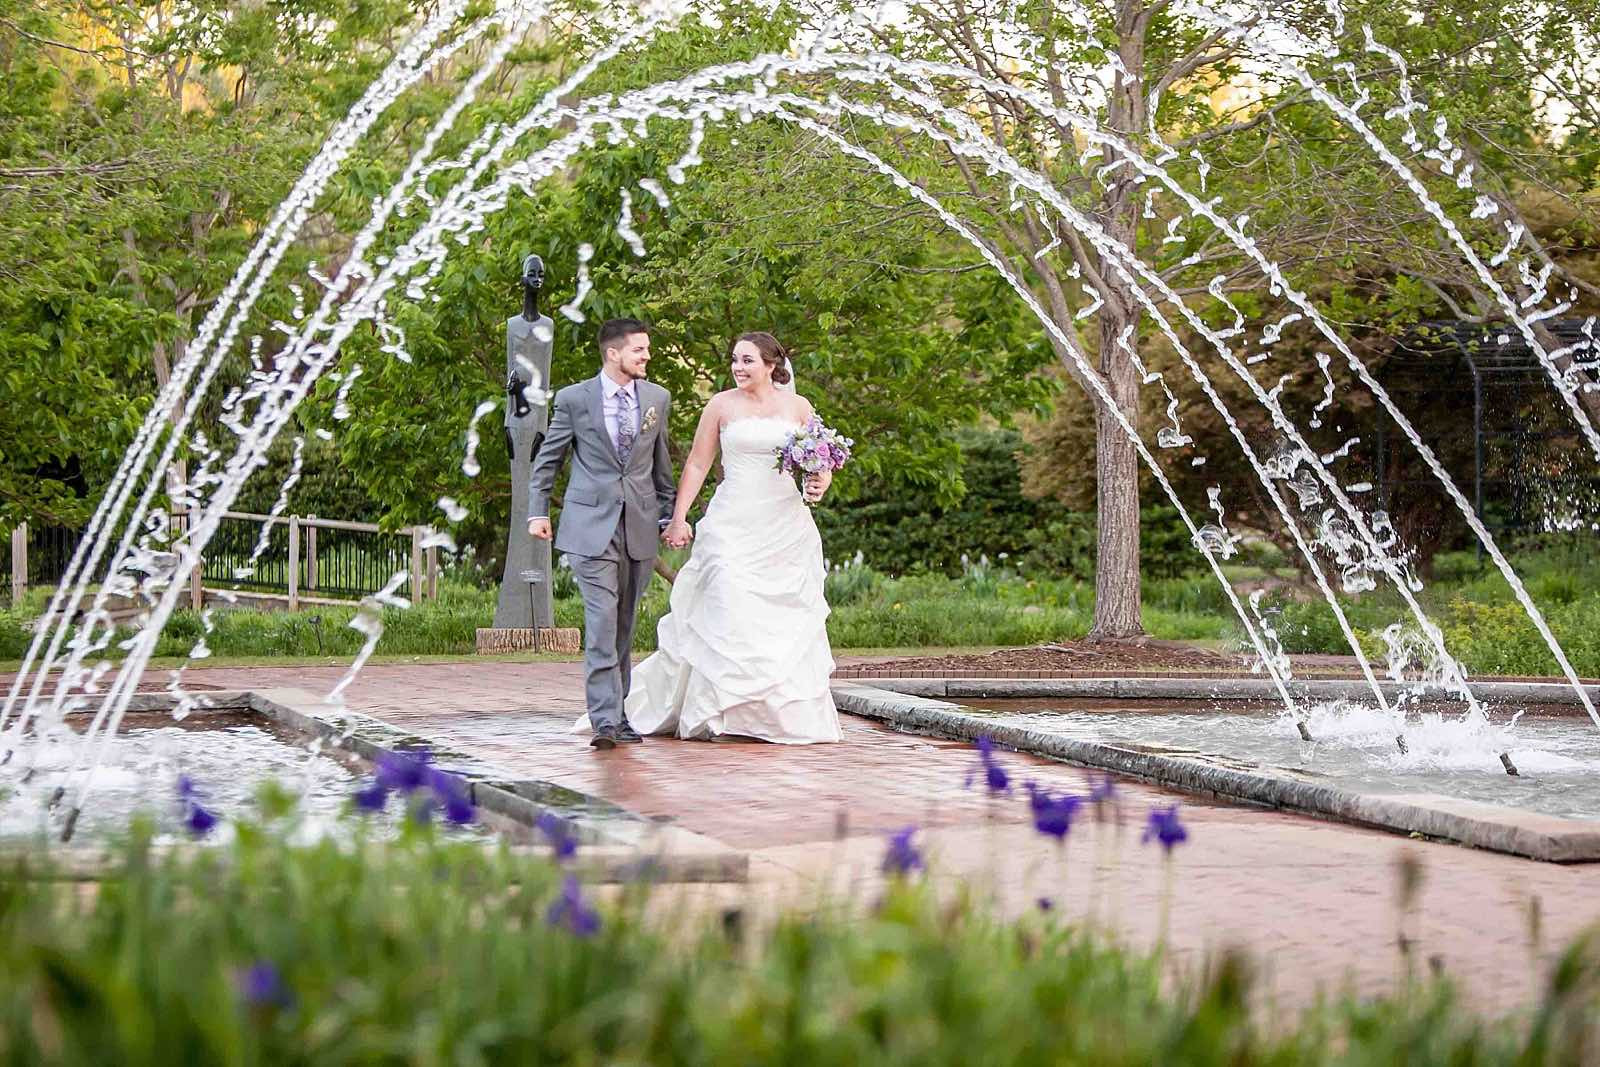 Nothing but smiles in this lavender garden wedding